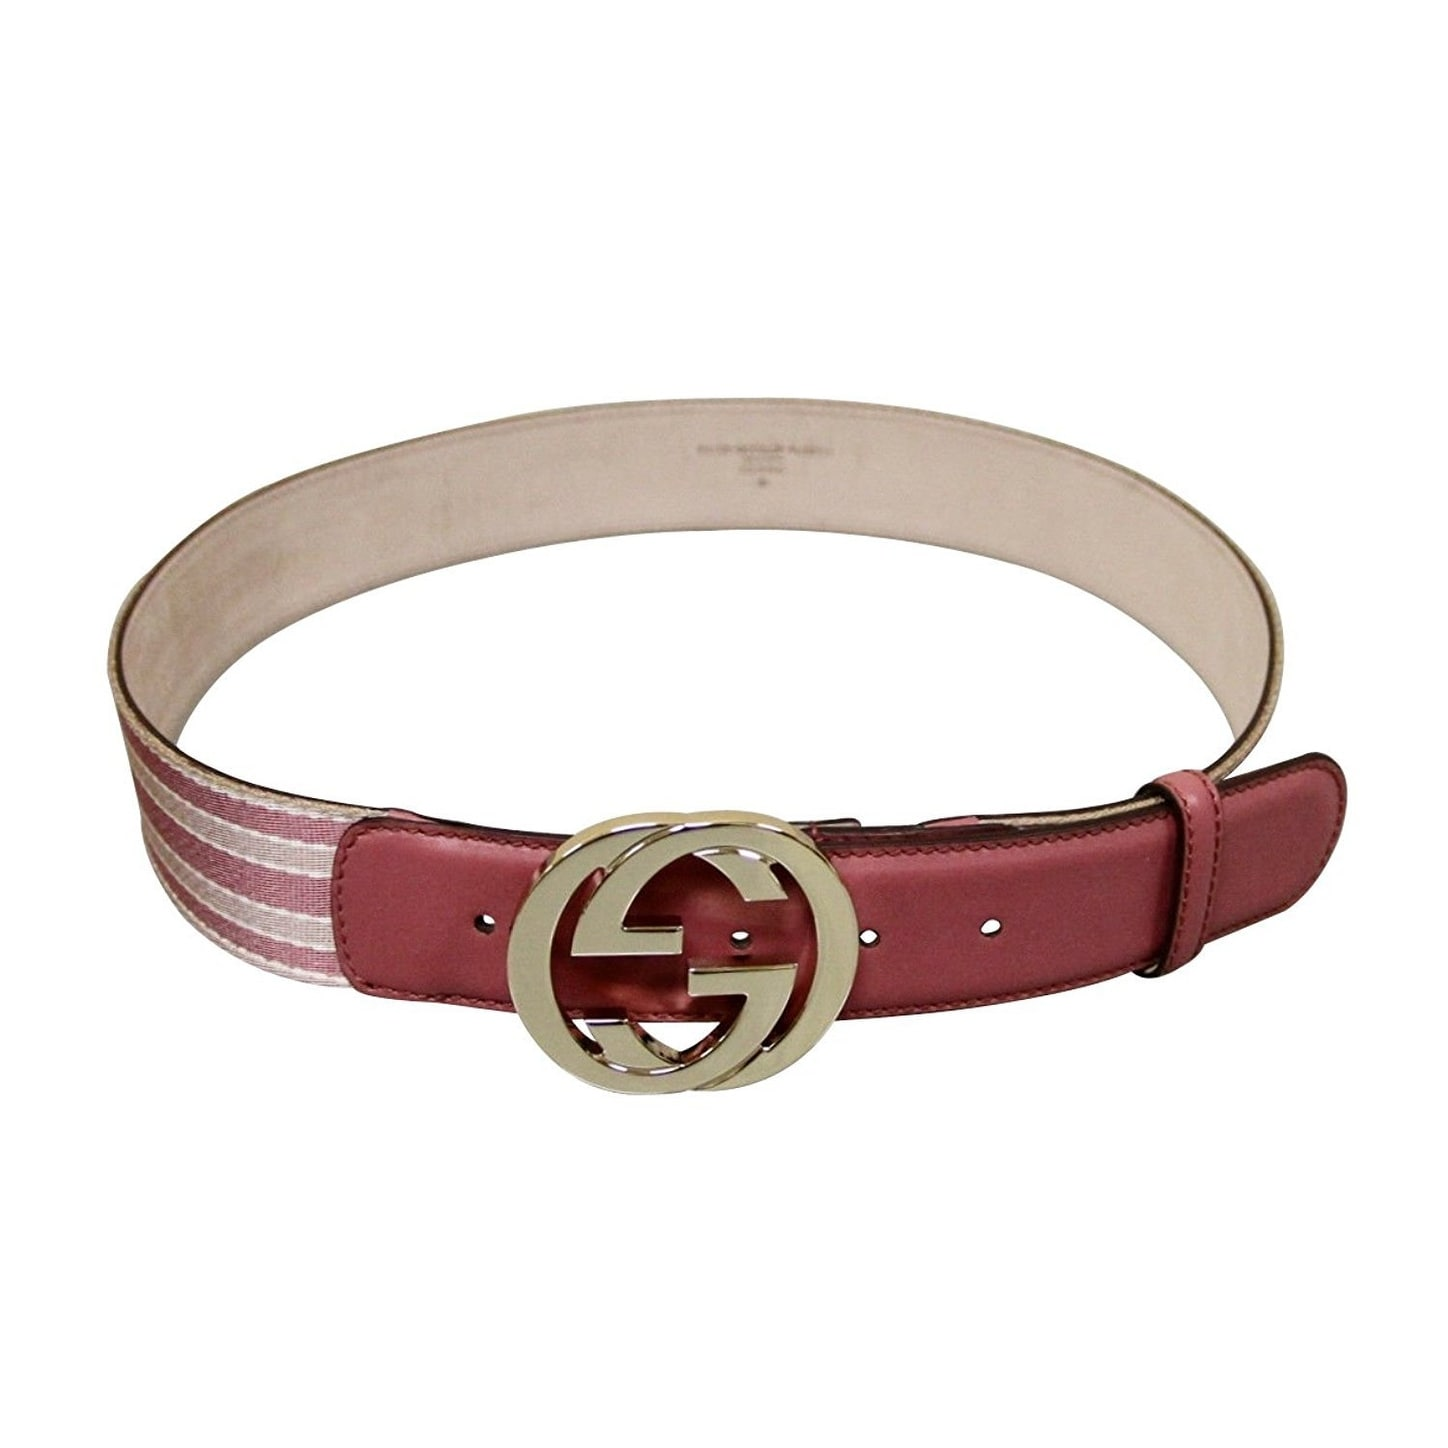 81000b7c143 Shop Gucci Women s Canvas Leather Interlocking G Buckle Web Belt 114876 -  90   36 - Free Shipping Today - Overstock - 24581301